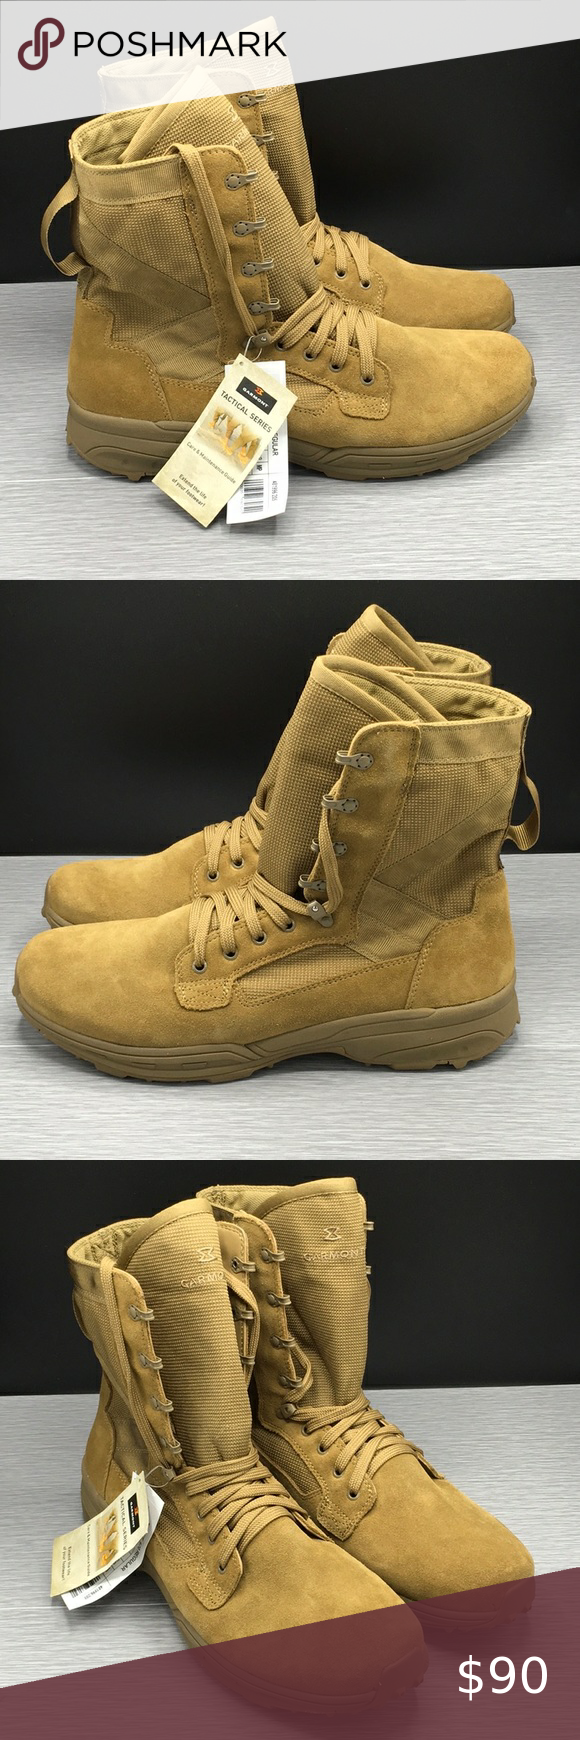 Garmont T8 Nfs 670 Regular Coyote Boot Sz 15 In 2020 With Images Boots Shoe Boots Tan Brown